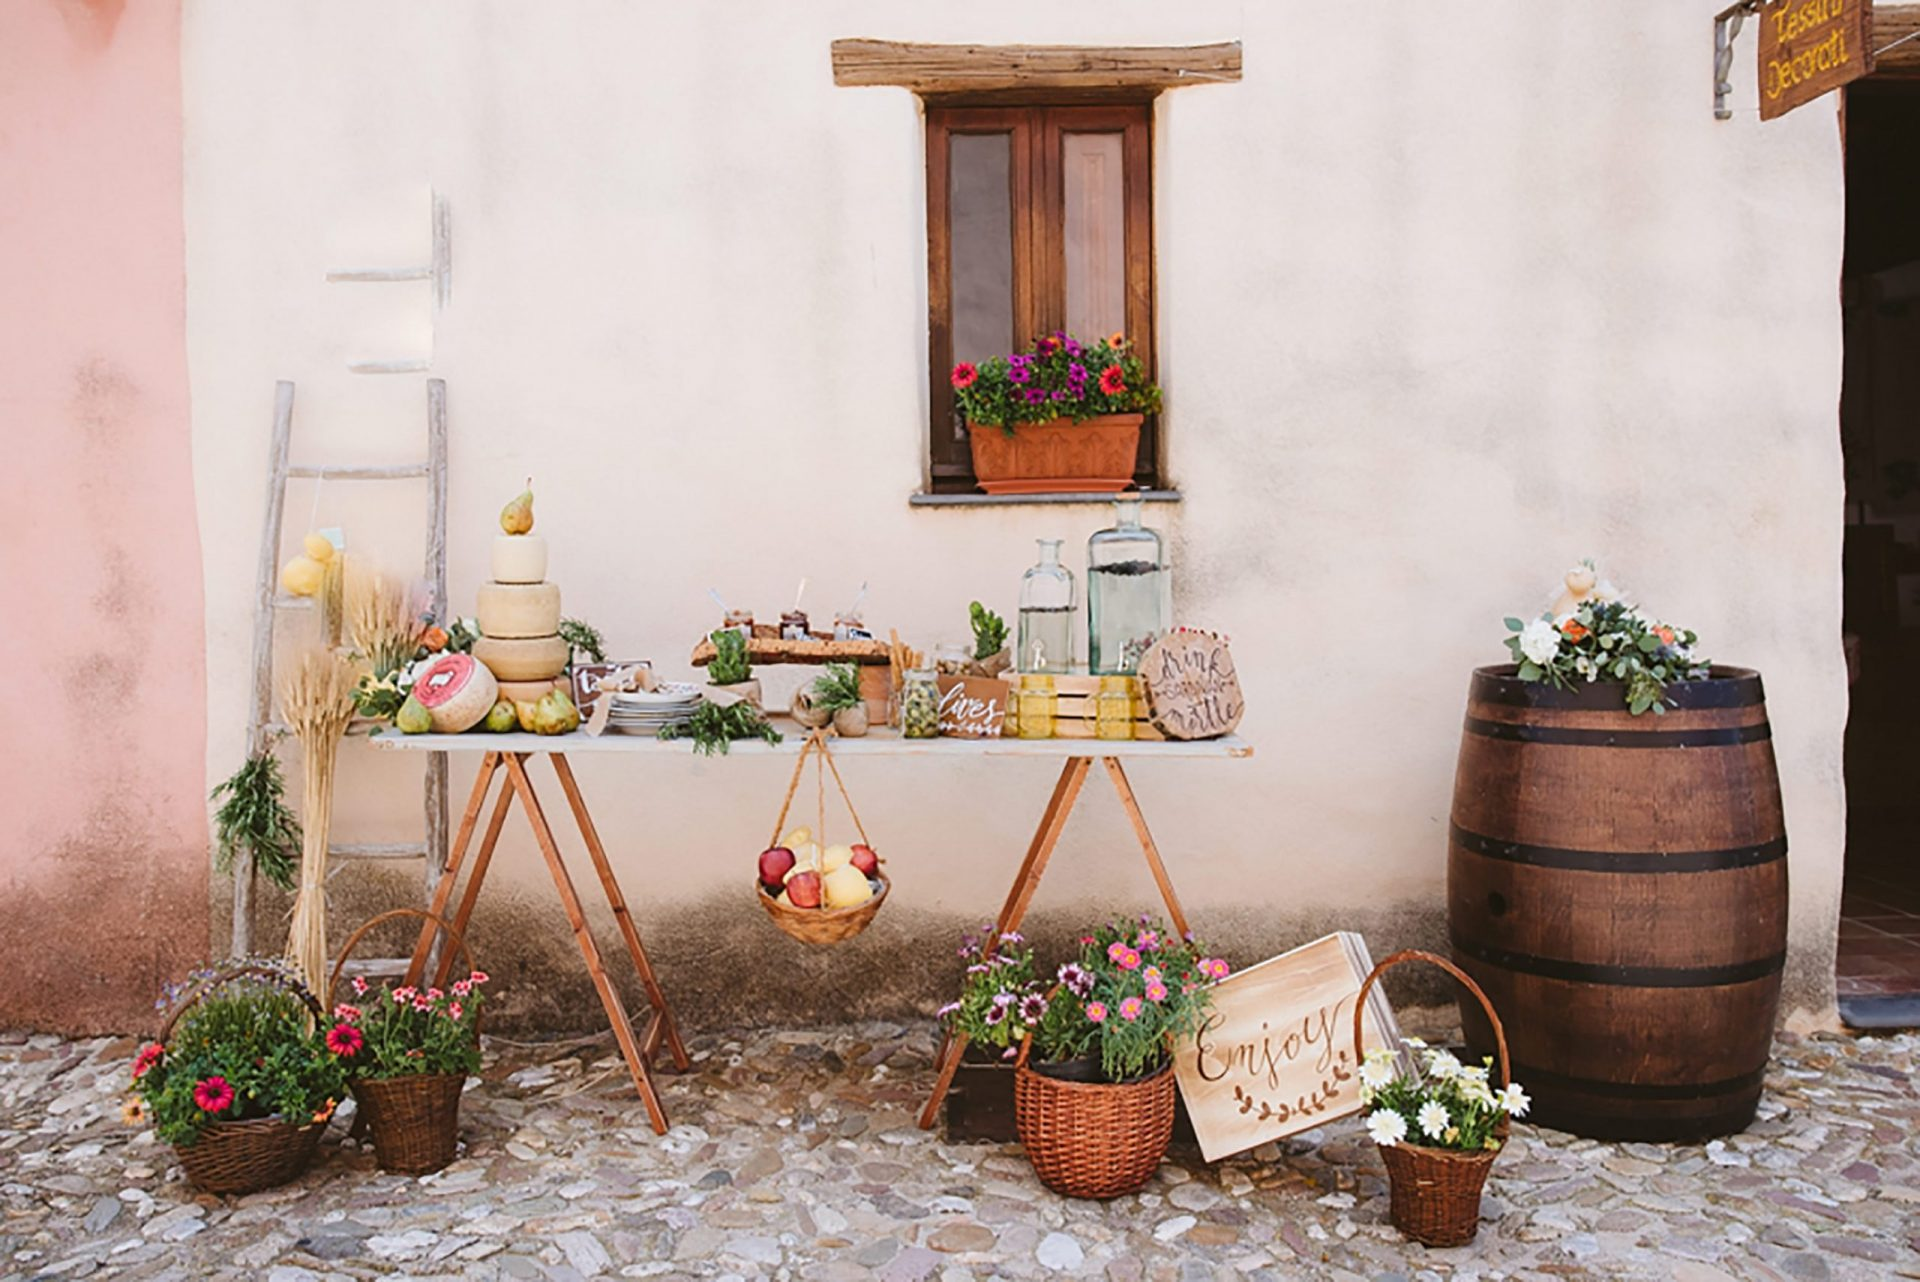 Elopement in traditional Italian village, design